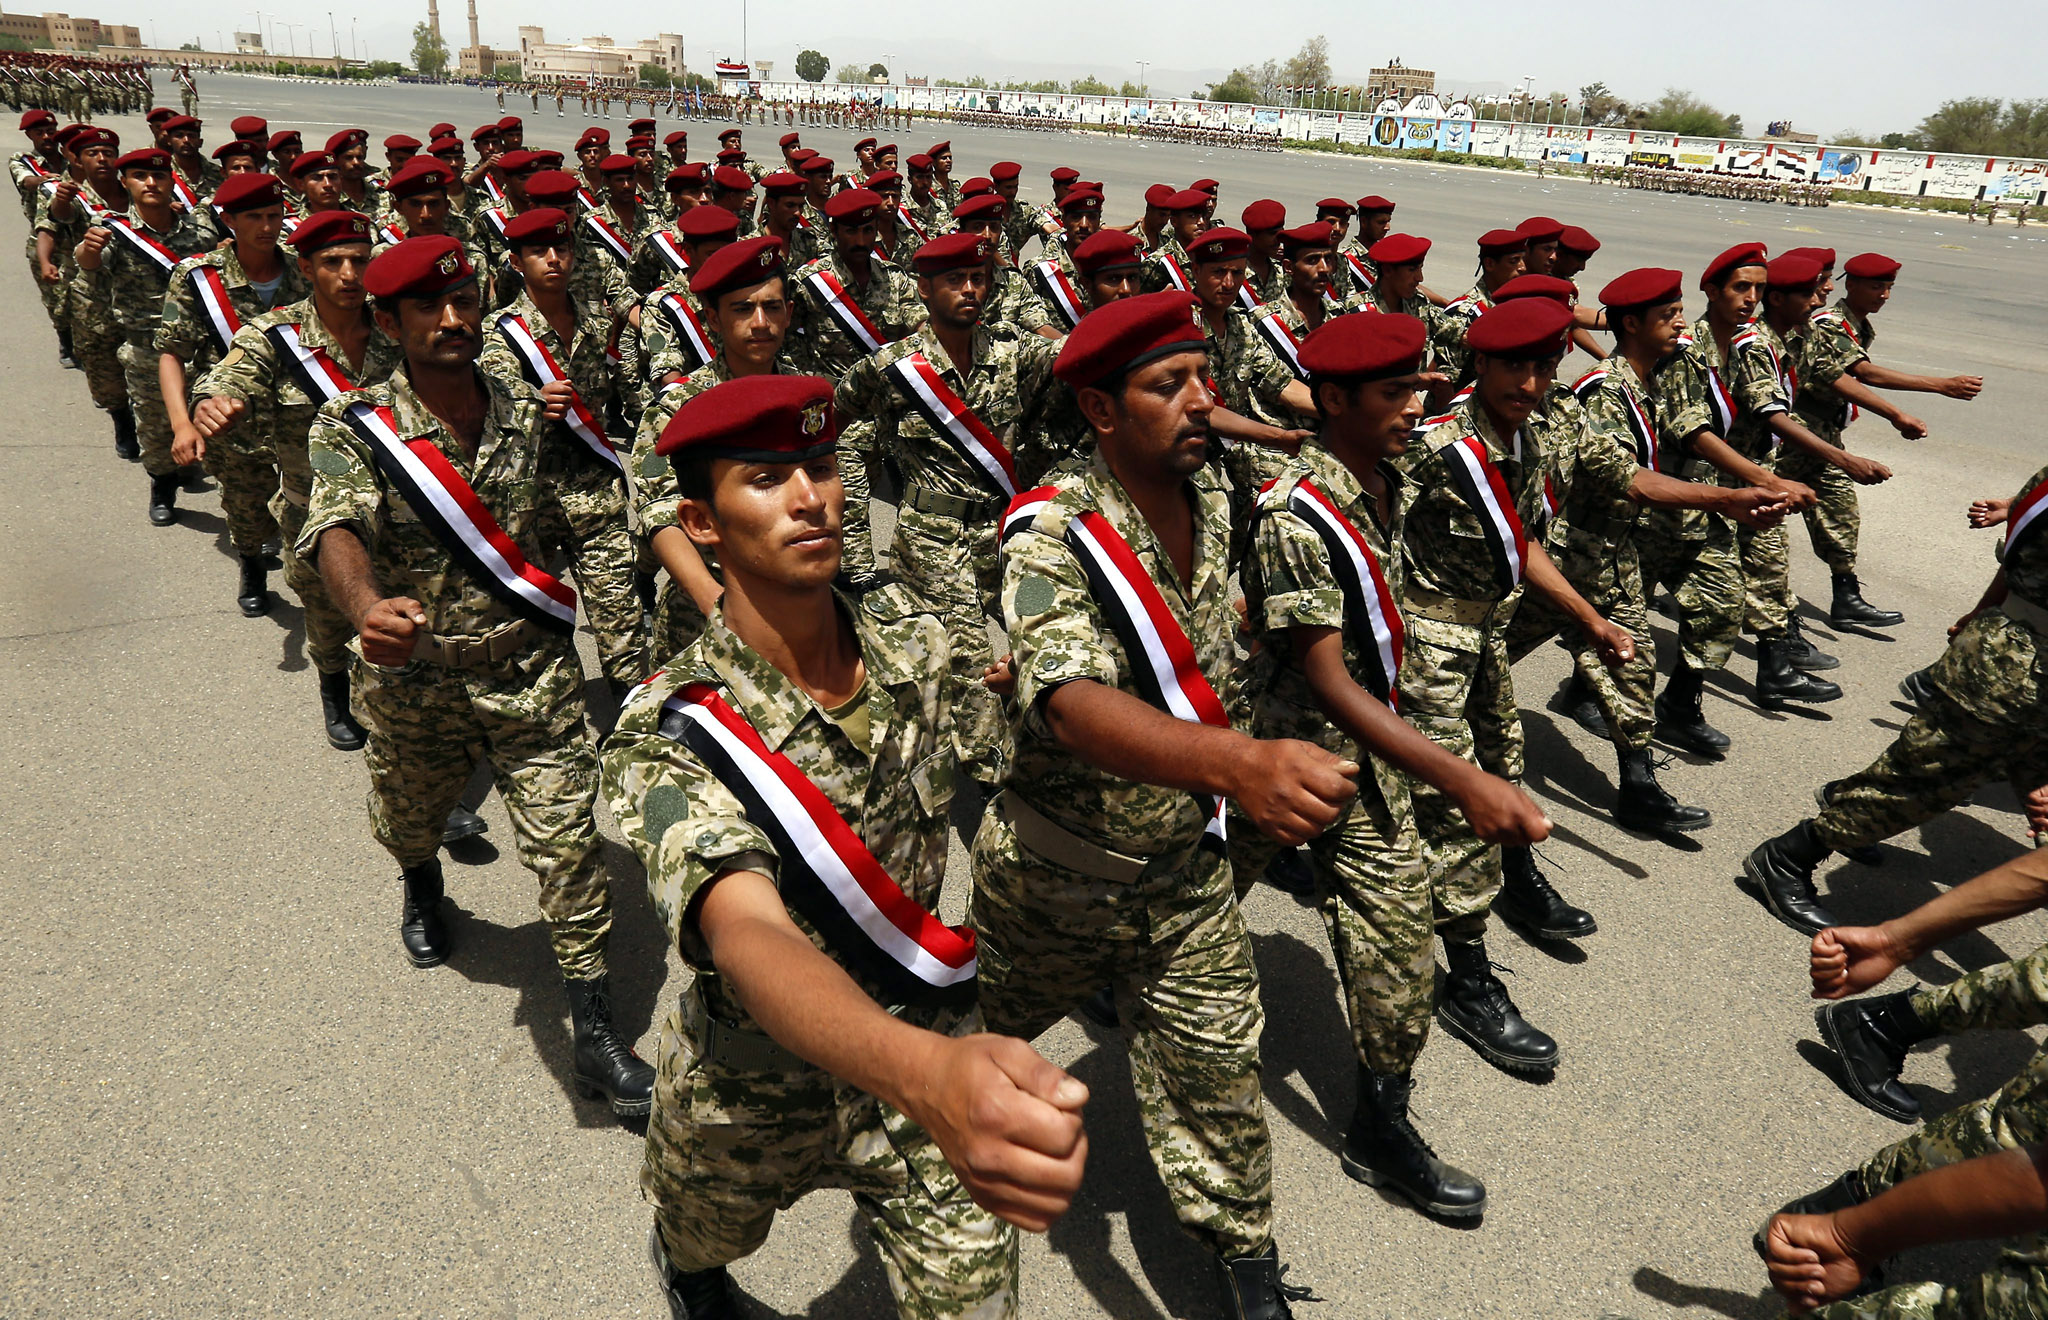 epa05340198 Yemeni army soldiers march during a military academy celebration in Sana'a, Yemen, 01 June 2016. According to reports, the current Yemeni peace talks in Kuwait continue as international and UN efforts are spent to reach an understanding to end the more than year of the conflict and reach a political settlement after Houthi militias and allied forces had ousted the legitimate government of Yemeni president Abdo Rabbo Mansour Hadi.  EPA/YAHYA ARHAB